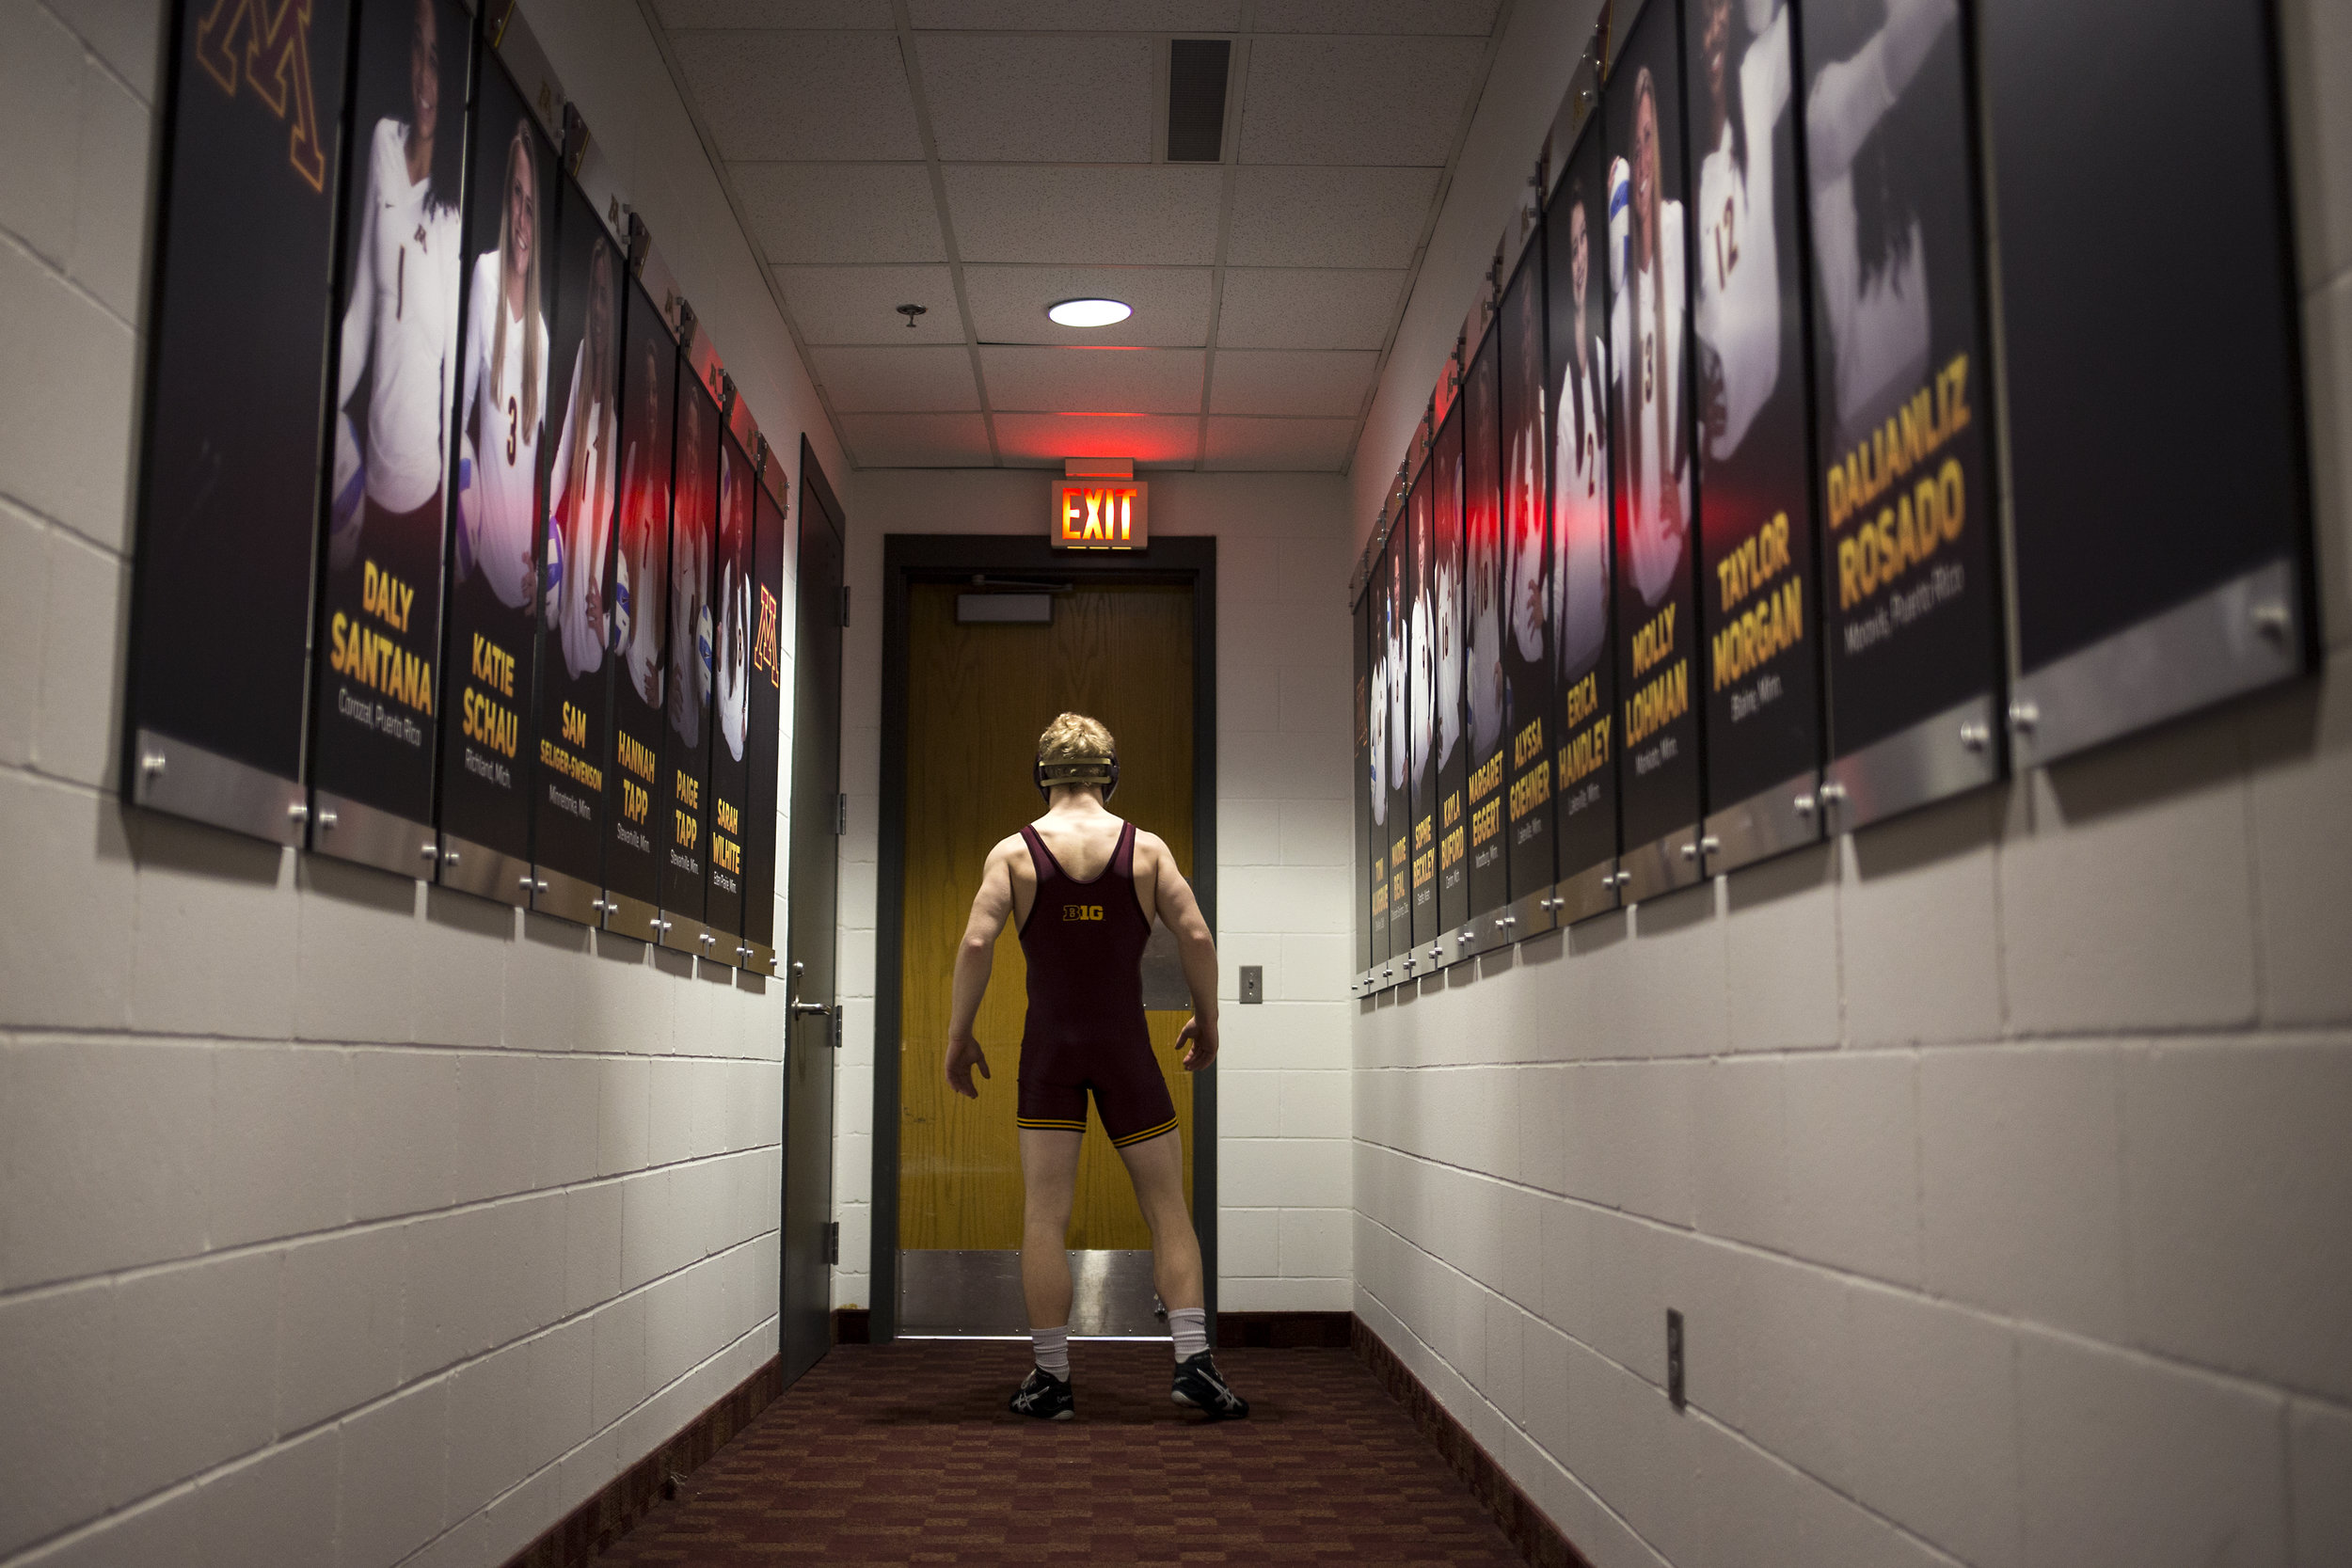 Junior Sam Brancale focuses, silently hopping between feet as he waits to compete in front of more than 2,000 fans at the Sports Pavilion.